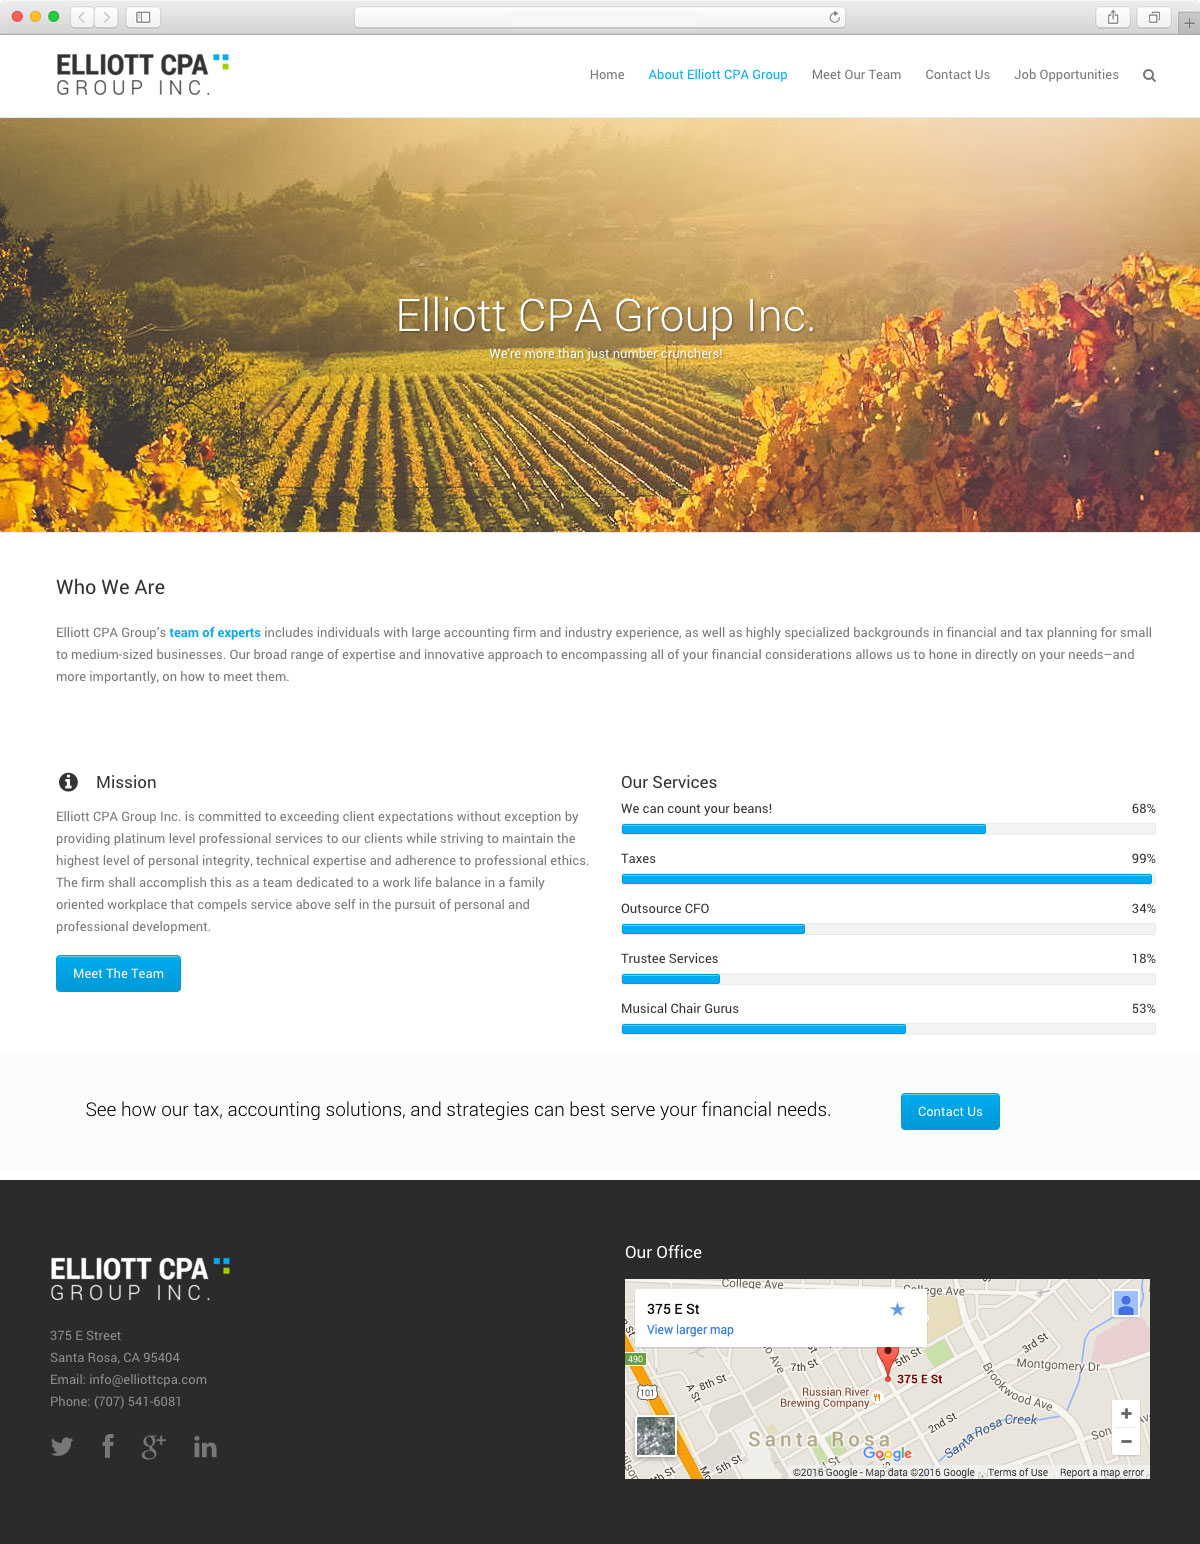 adept_website_mockup_elliottcpa_about